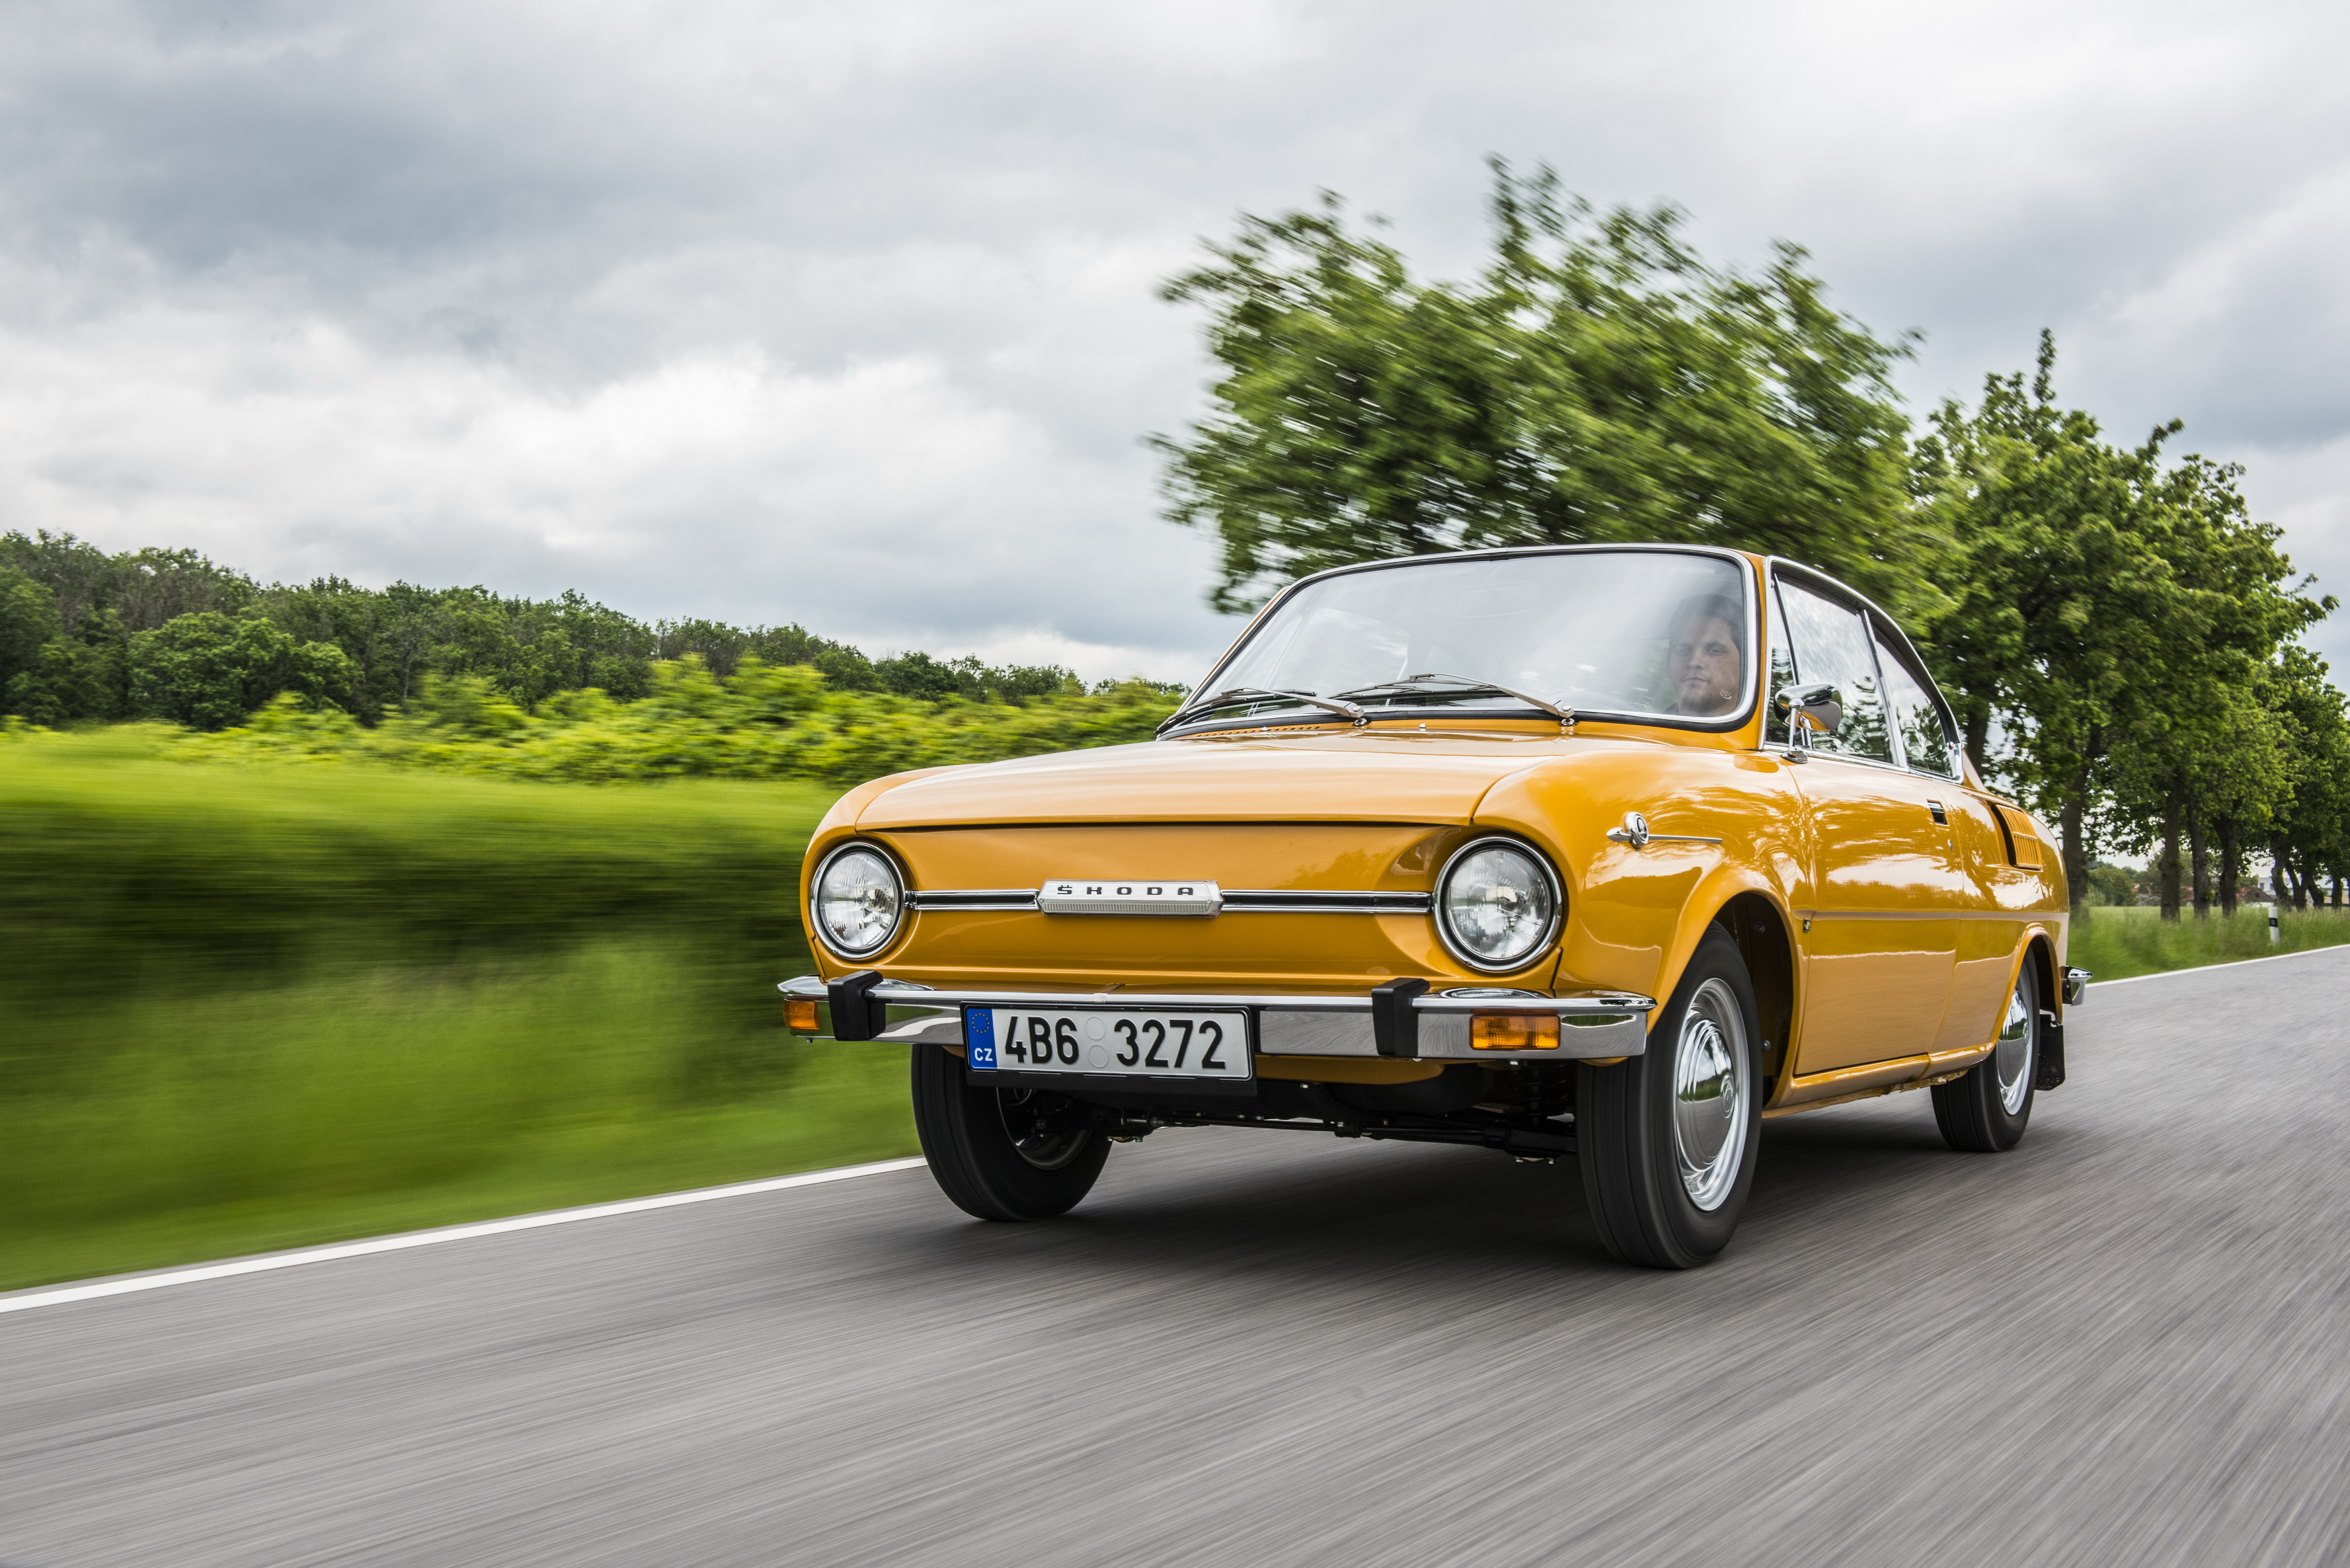 125 years of SKODA: A journey through time with twelve automotive milestones from the company's history - Image 2